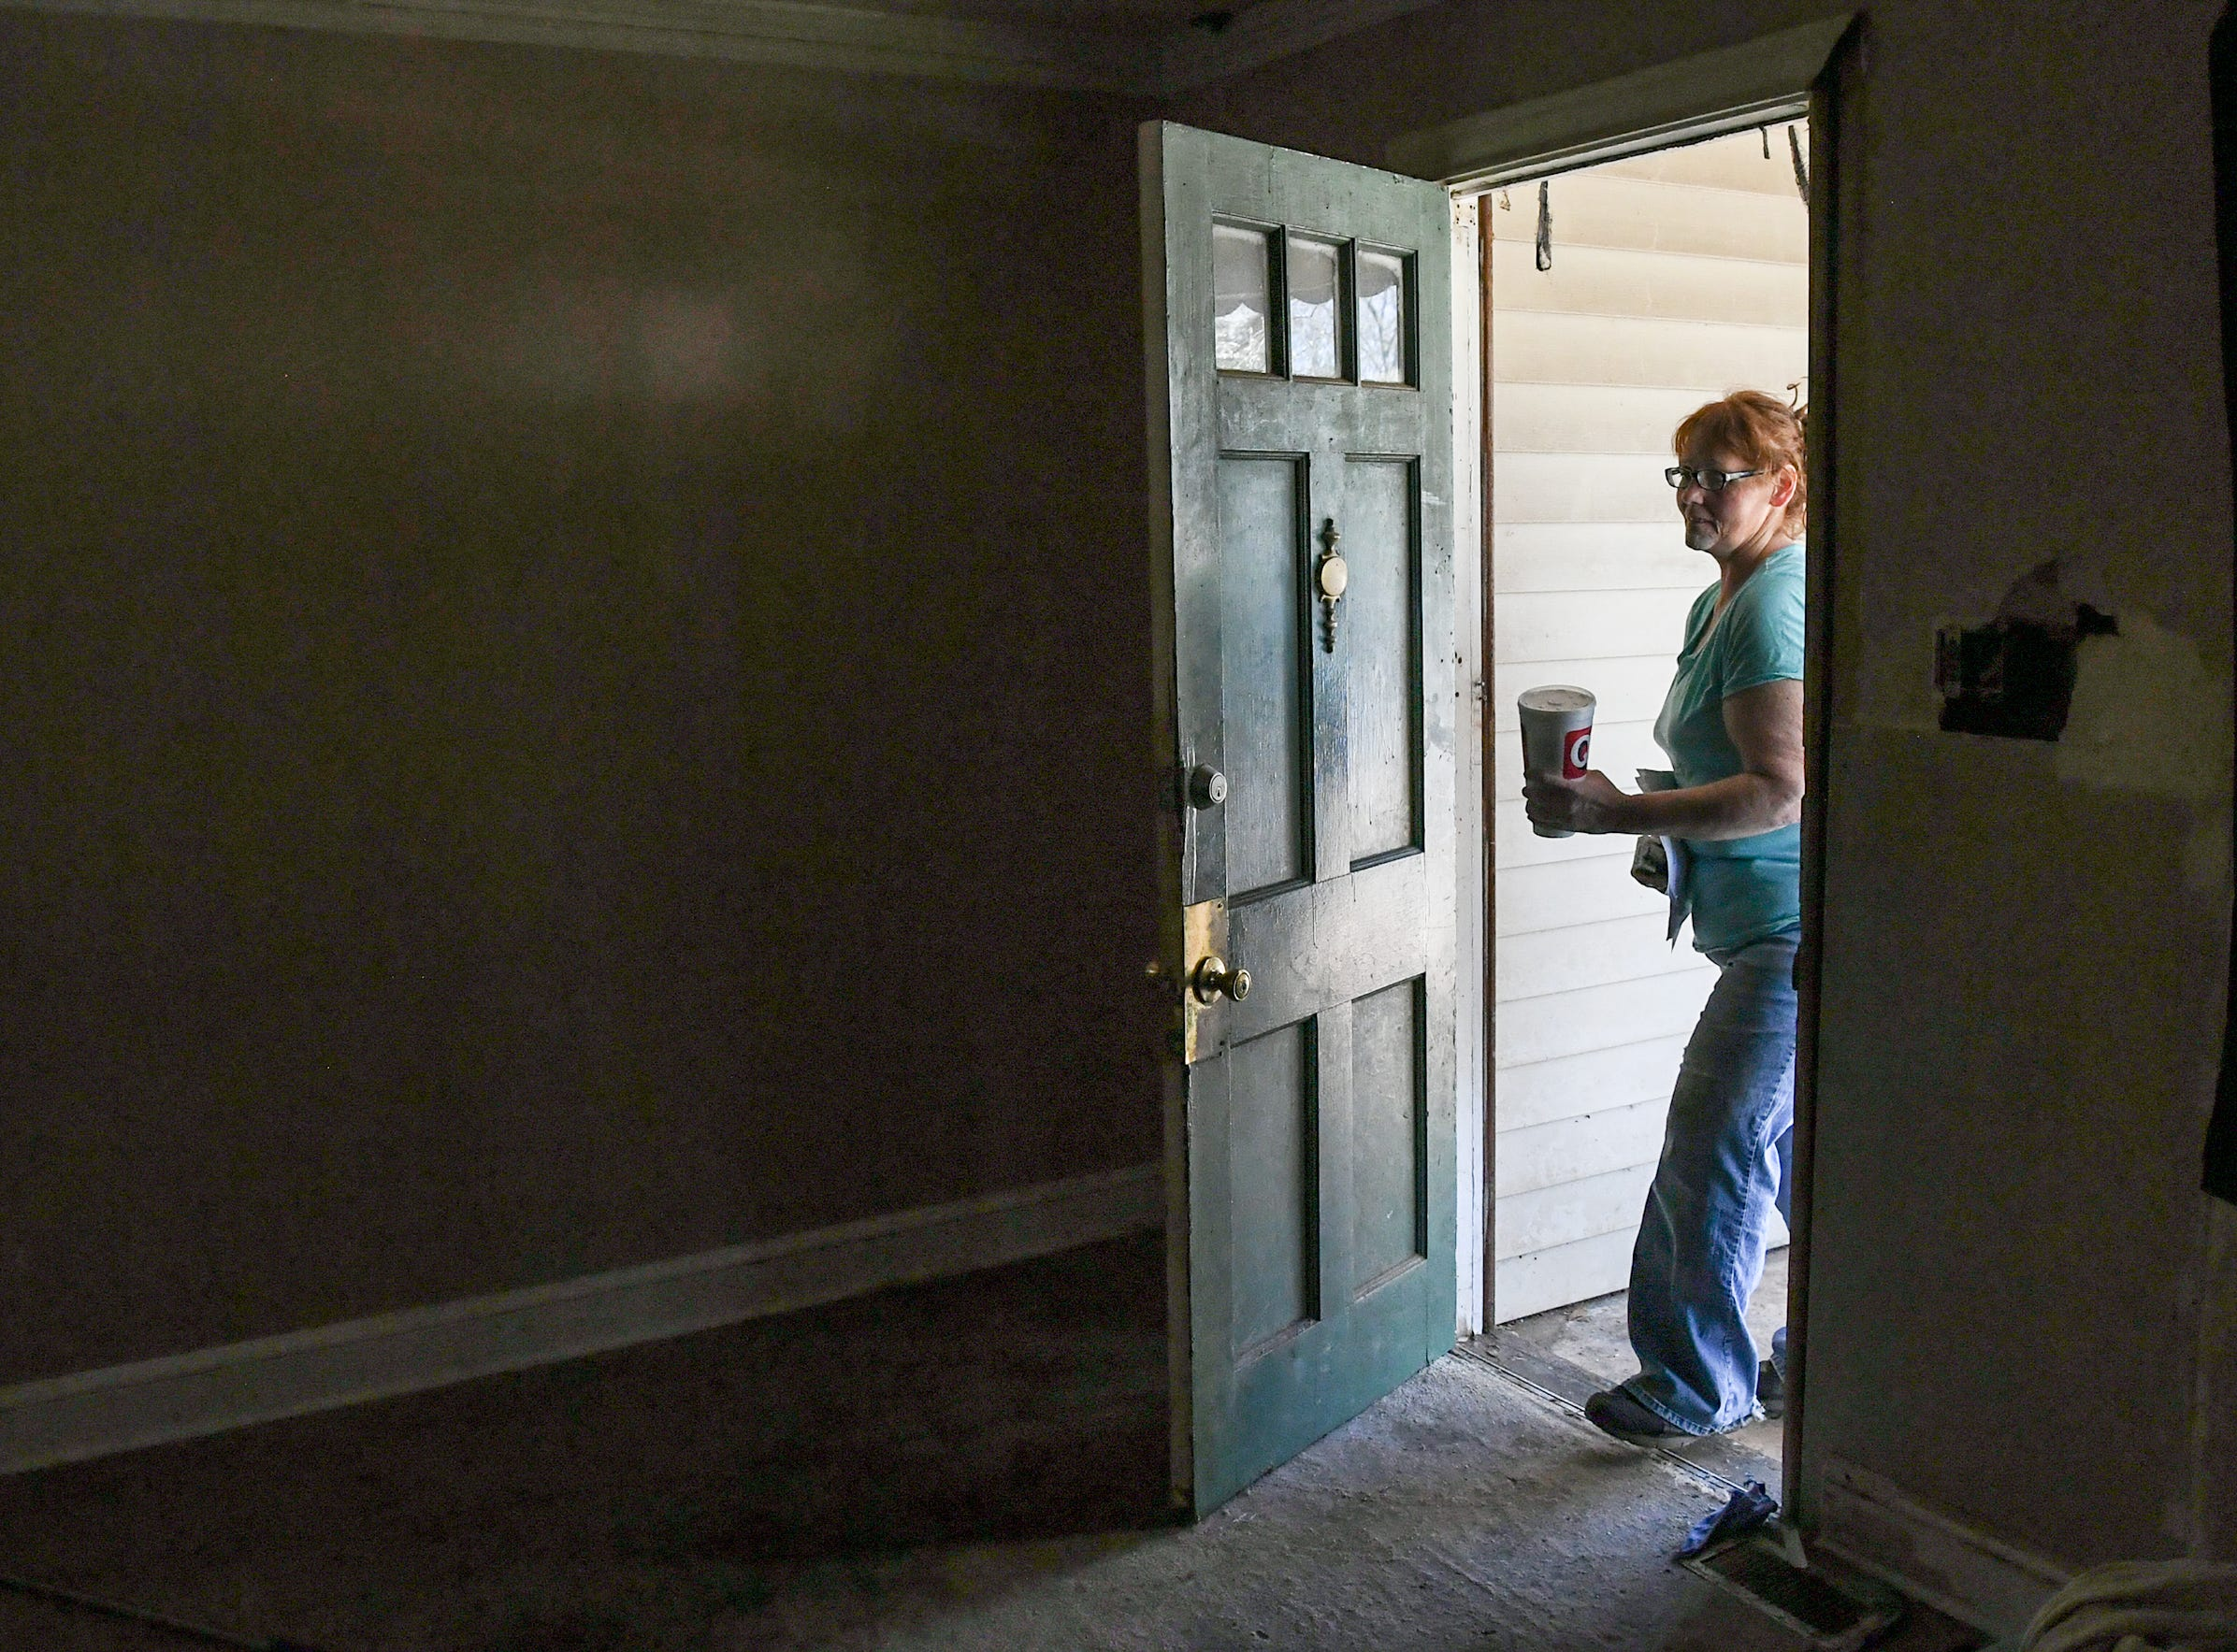 Kristy Drees of Anderson enters the rental home in Homeland Park with little power on during the day in March. Drees says her unemployment, looming water bill, and courtroom battles with her landlord is stressful.